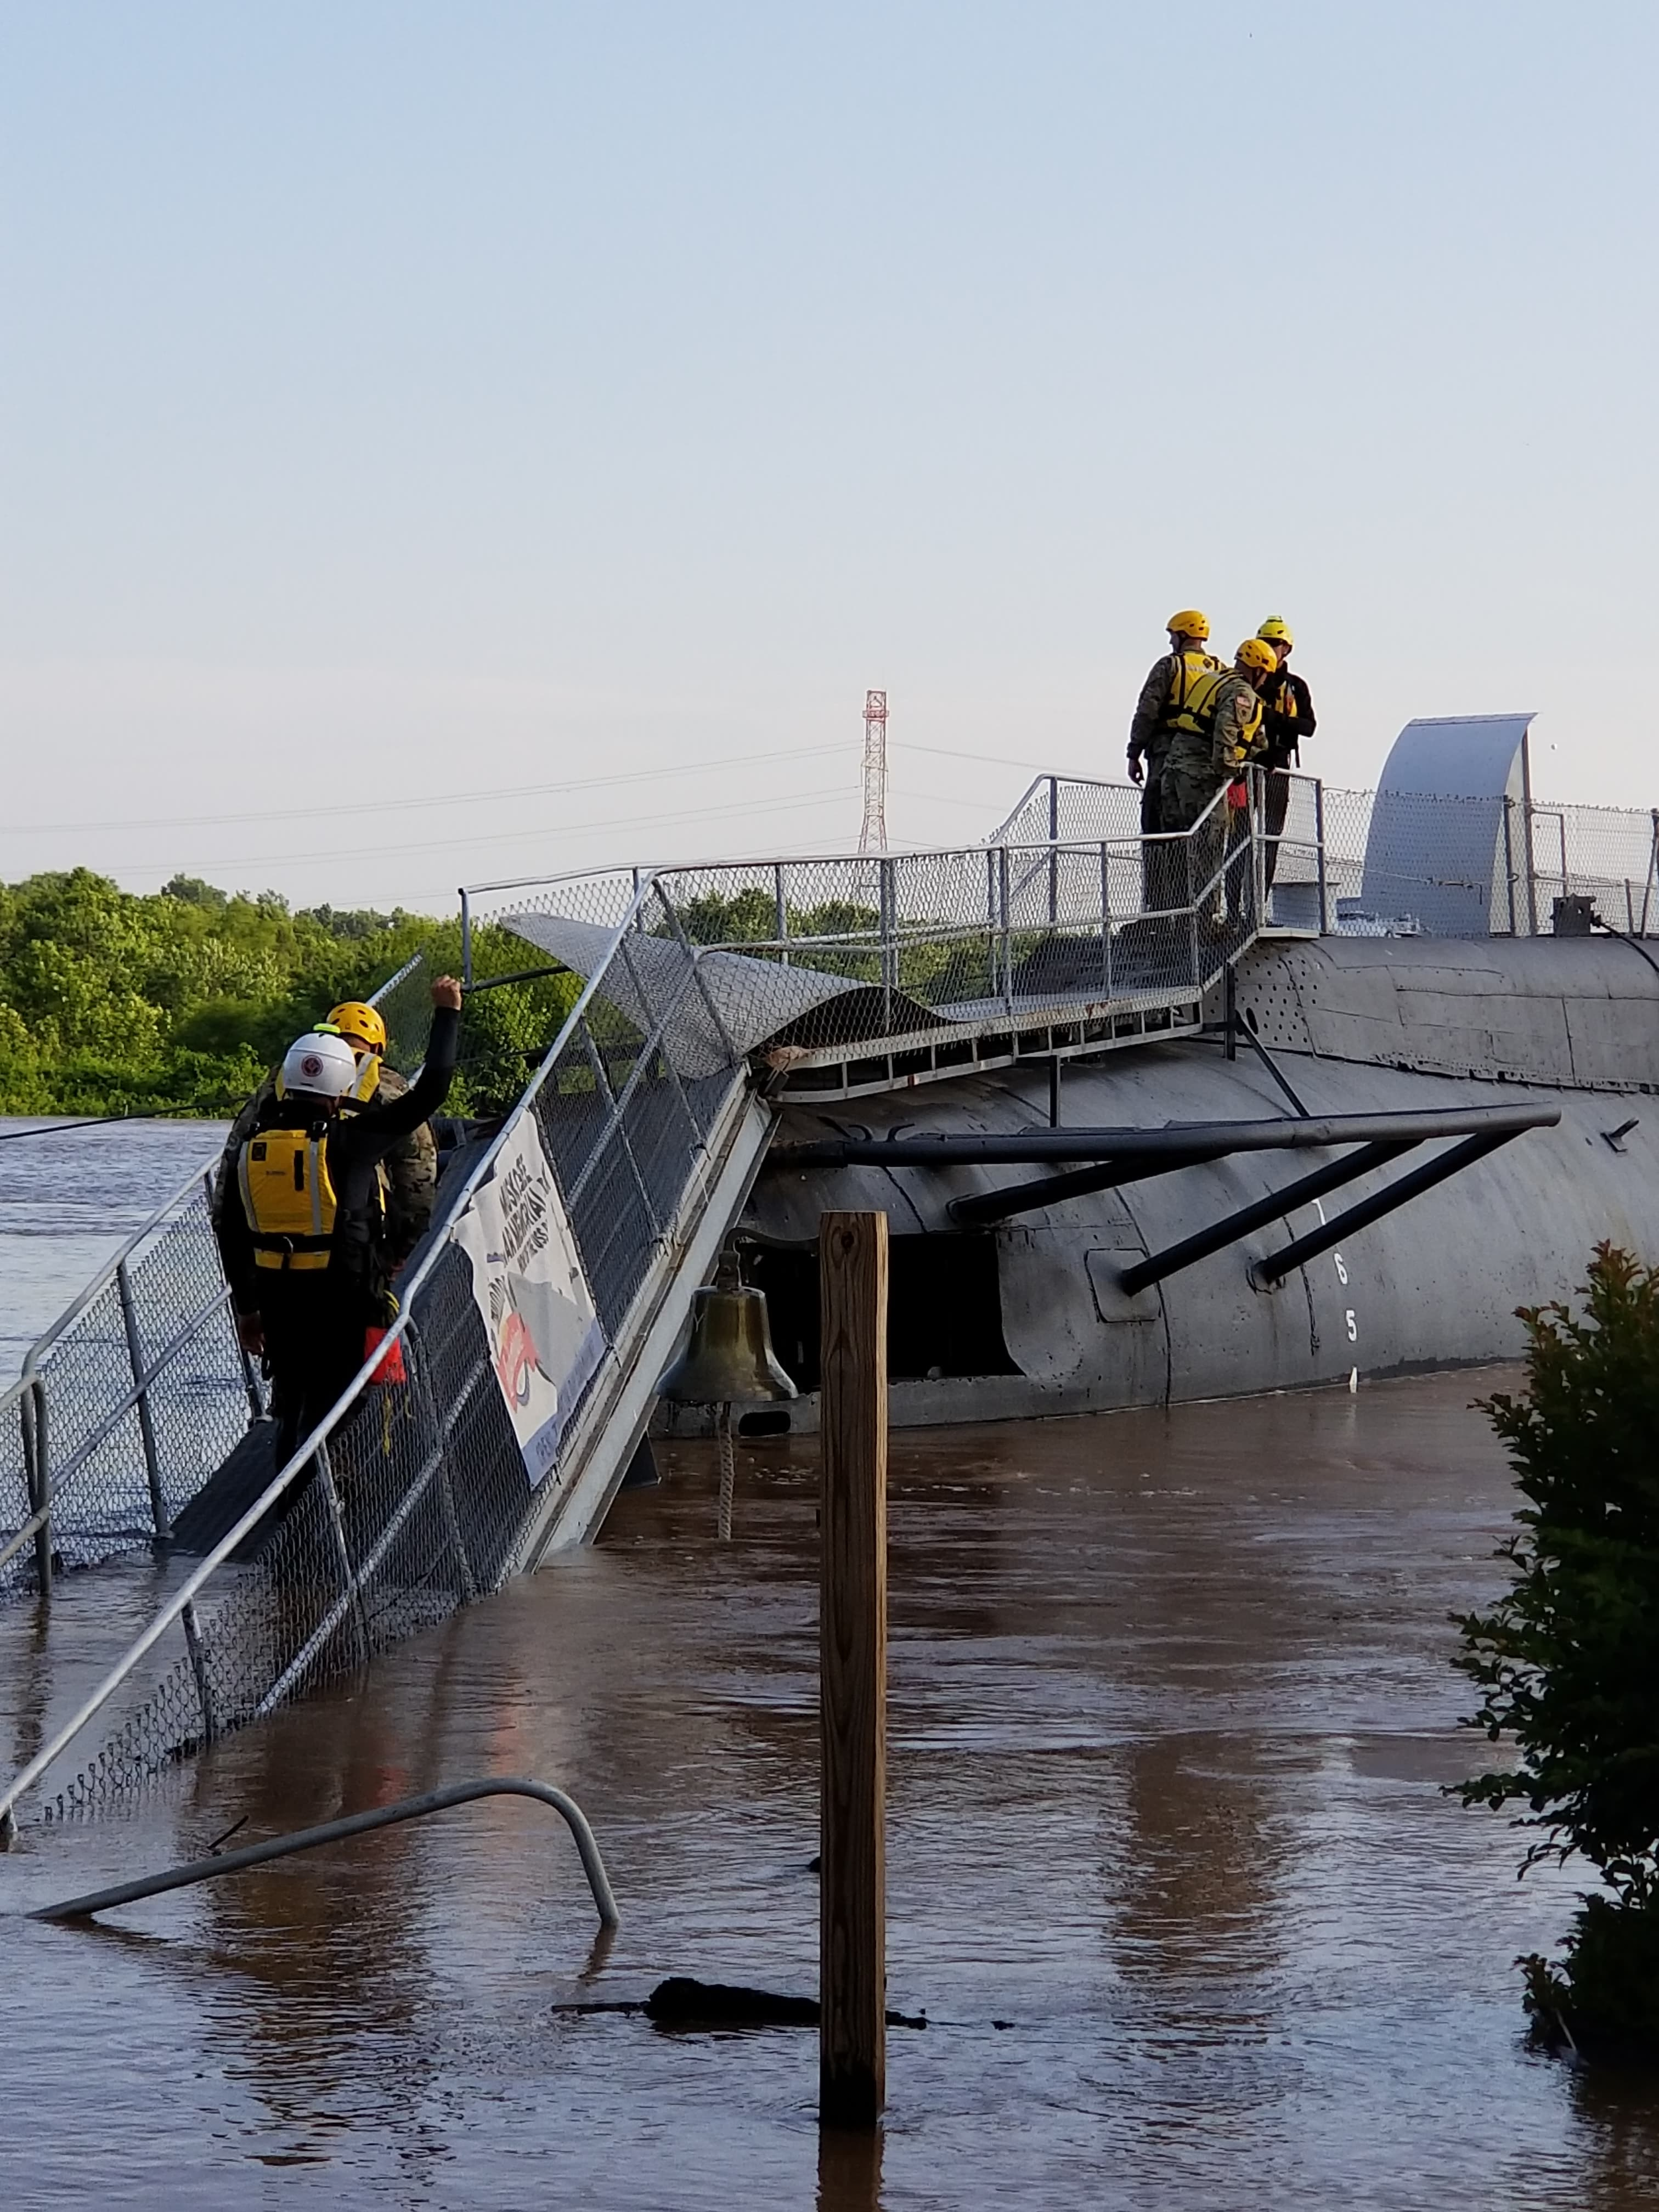 The USS Batfish at the Muskogee War Memorial Park during the flood that occurred in May 2019. The Friends of the Muskogee War Memorial Park are throwing a Trivia night with LT. Gov Matt Pinnell at the Muskogee Civic Center to raise money!